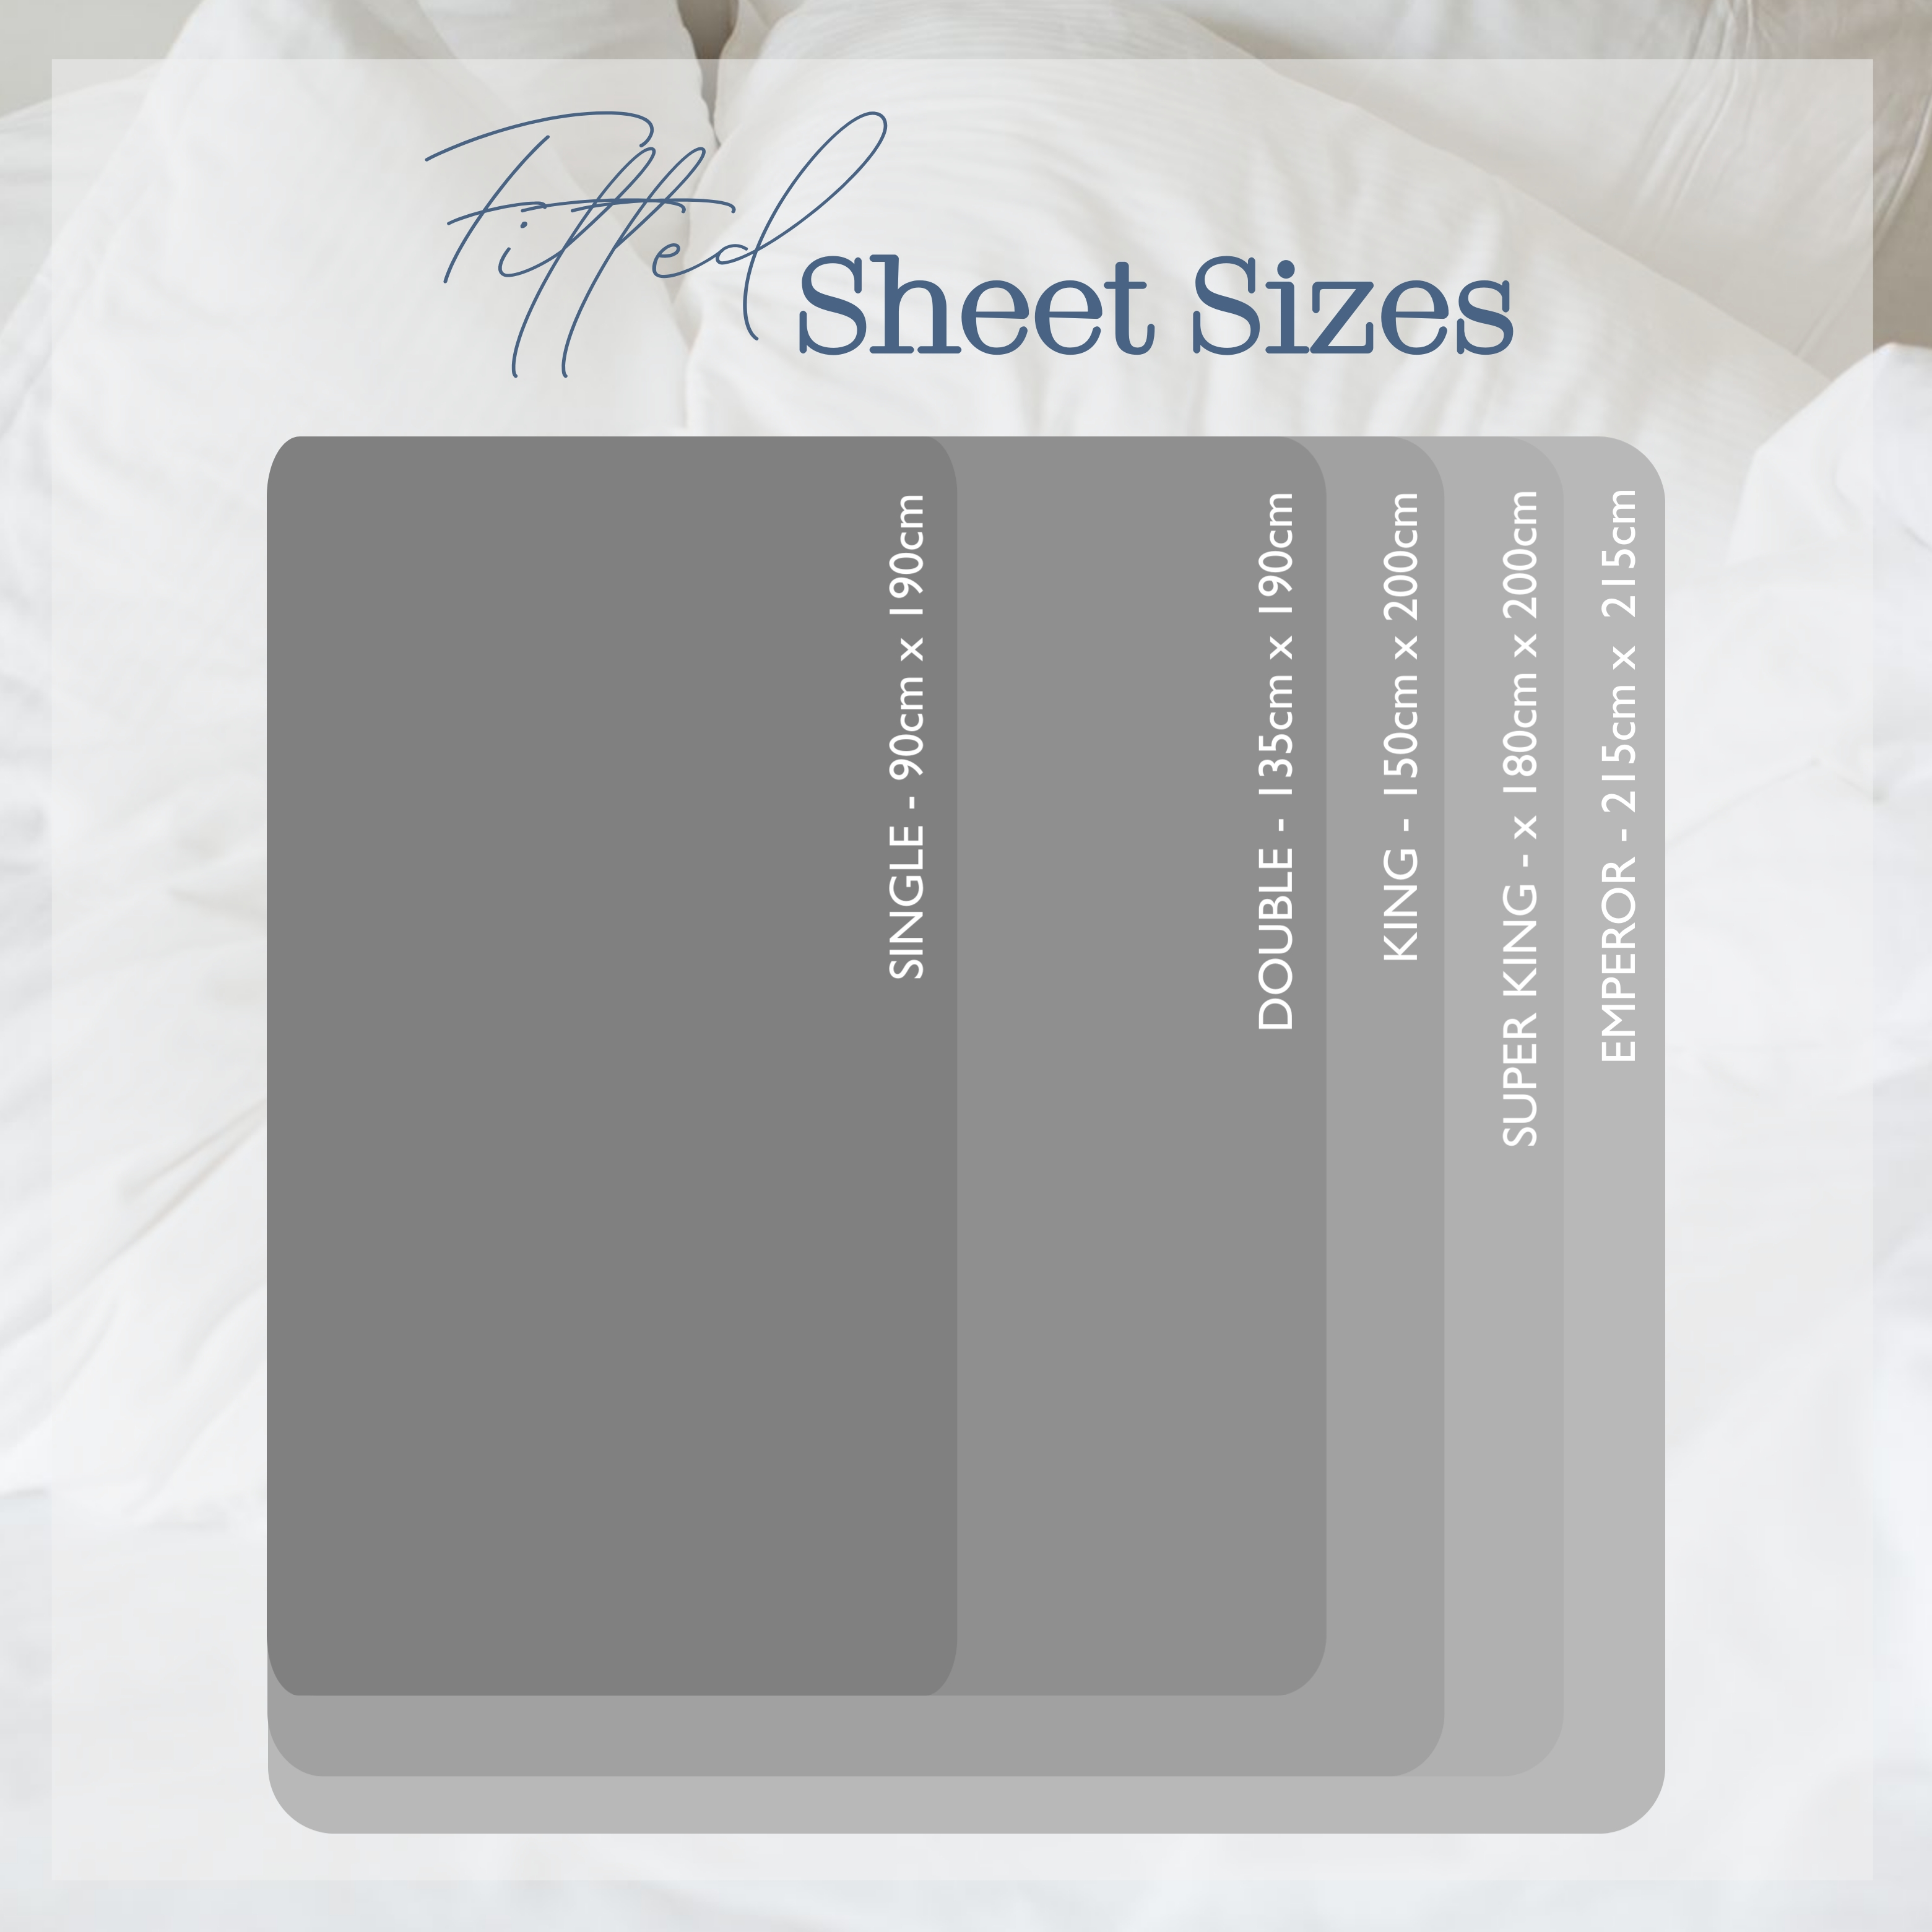 UK Fitted Sheet Size Guide